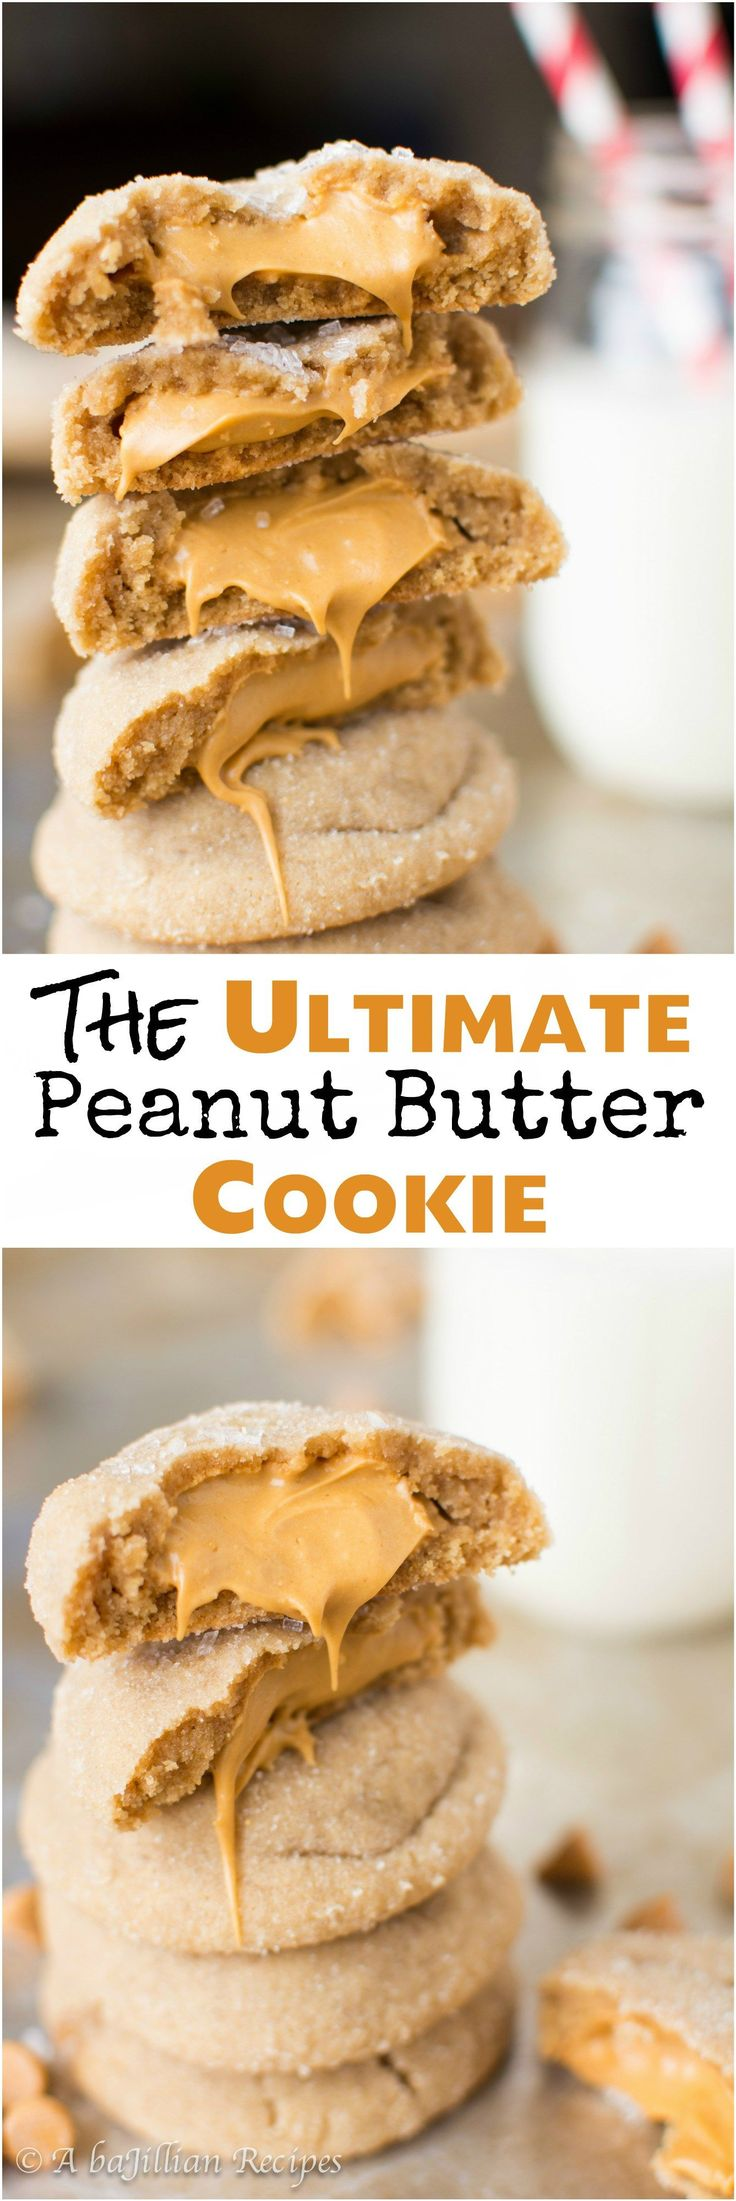 Super soft and chewy peanut buttery cookies stuffed with a peanut butter butterscotch truffle filling! Super Bowl is JUST around the corner, guys! Yep, the time of year when it's totally acceptable to give up on all those pesky healthy new year's resolutions (I told you it wouldn't last long) because it's a day reserved for nothing but junk food and funny...         Read More